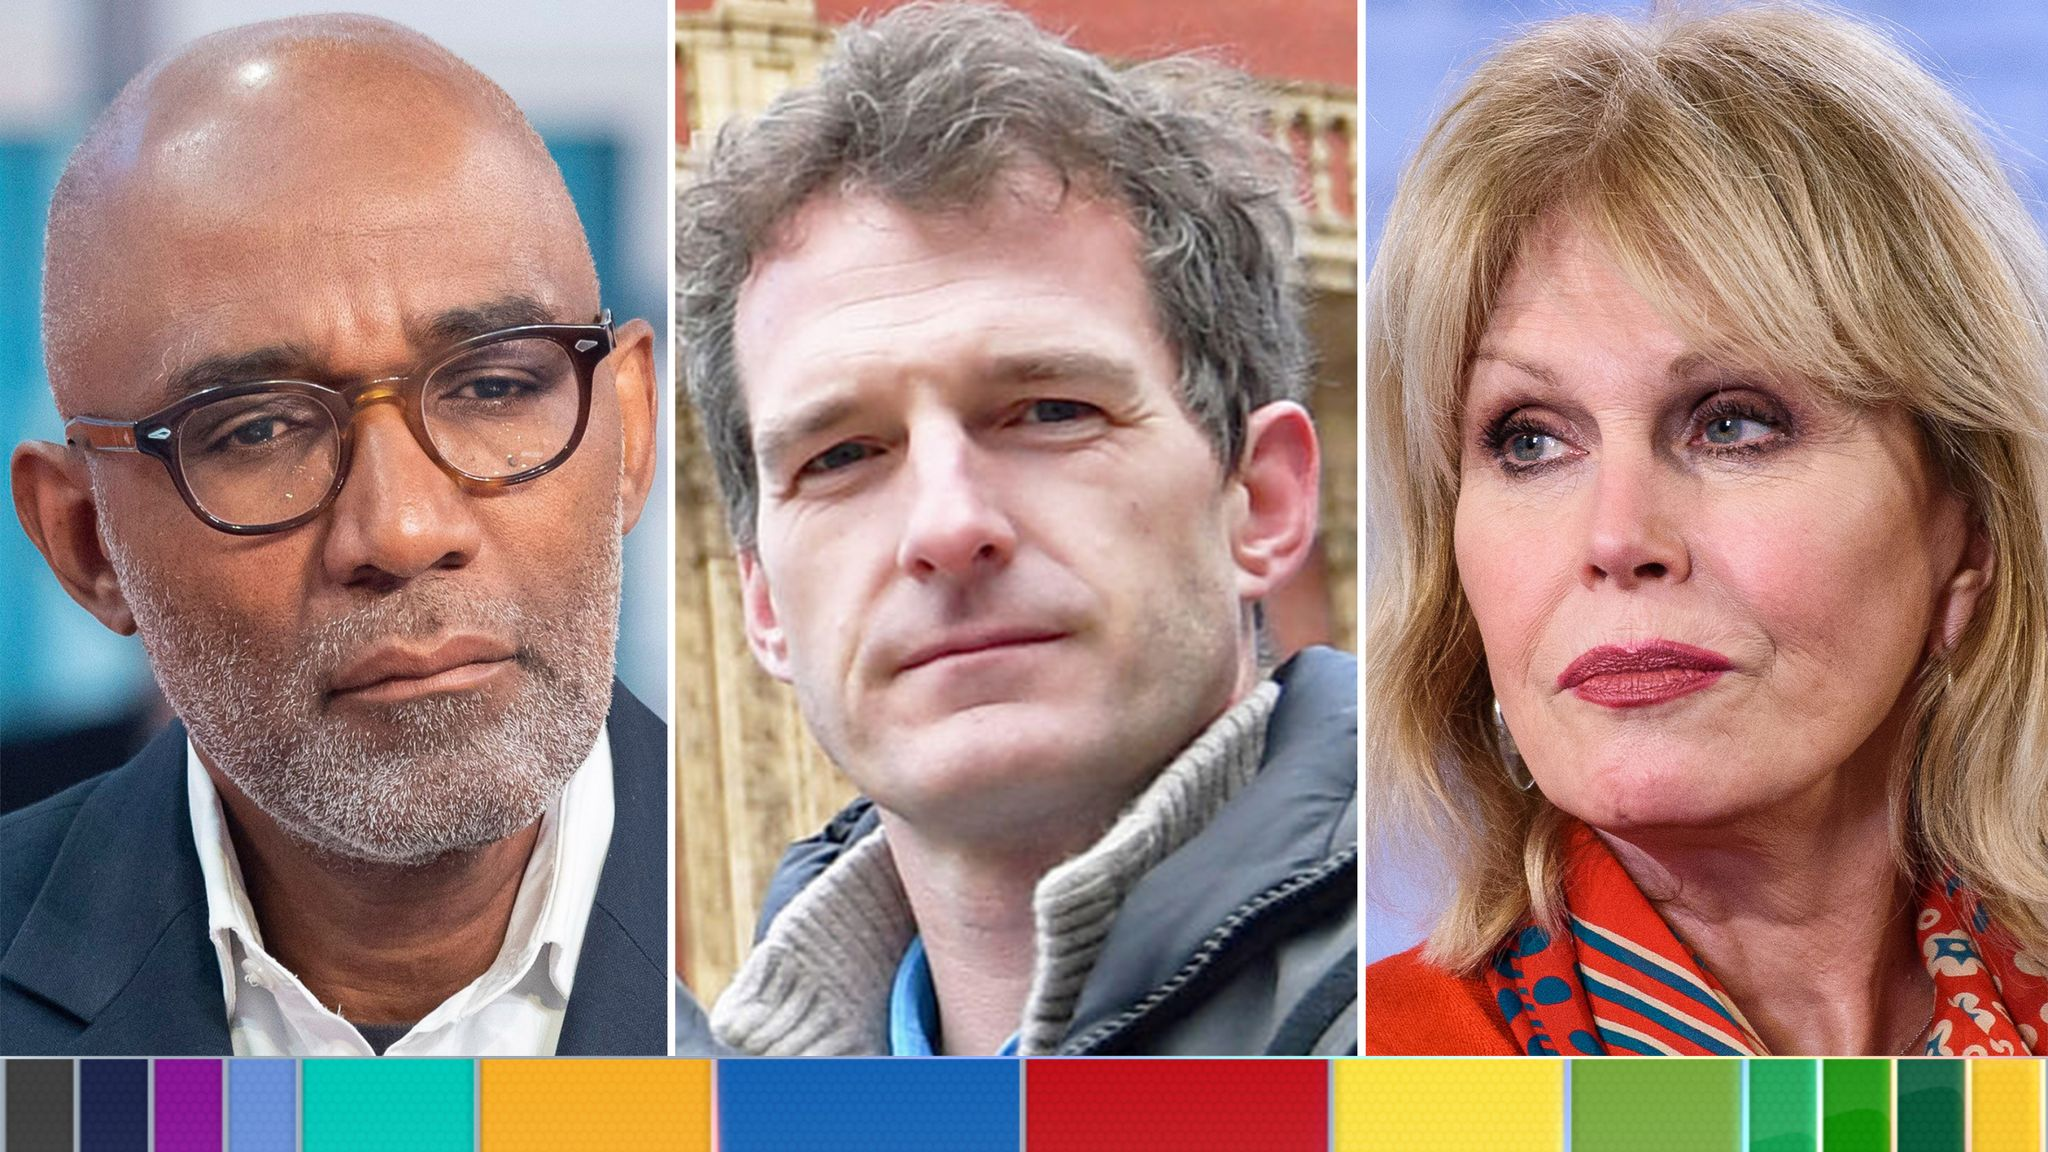 General election: John le Carre and Joanna Lumley among public figures refusing to vote Labour over antisemitism